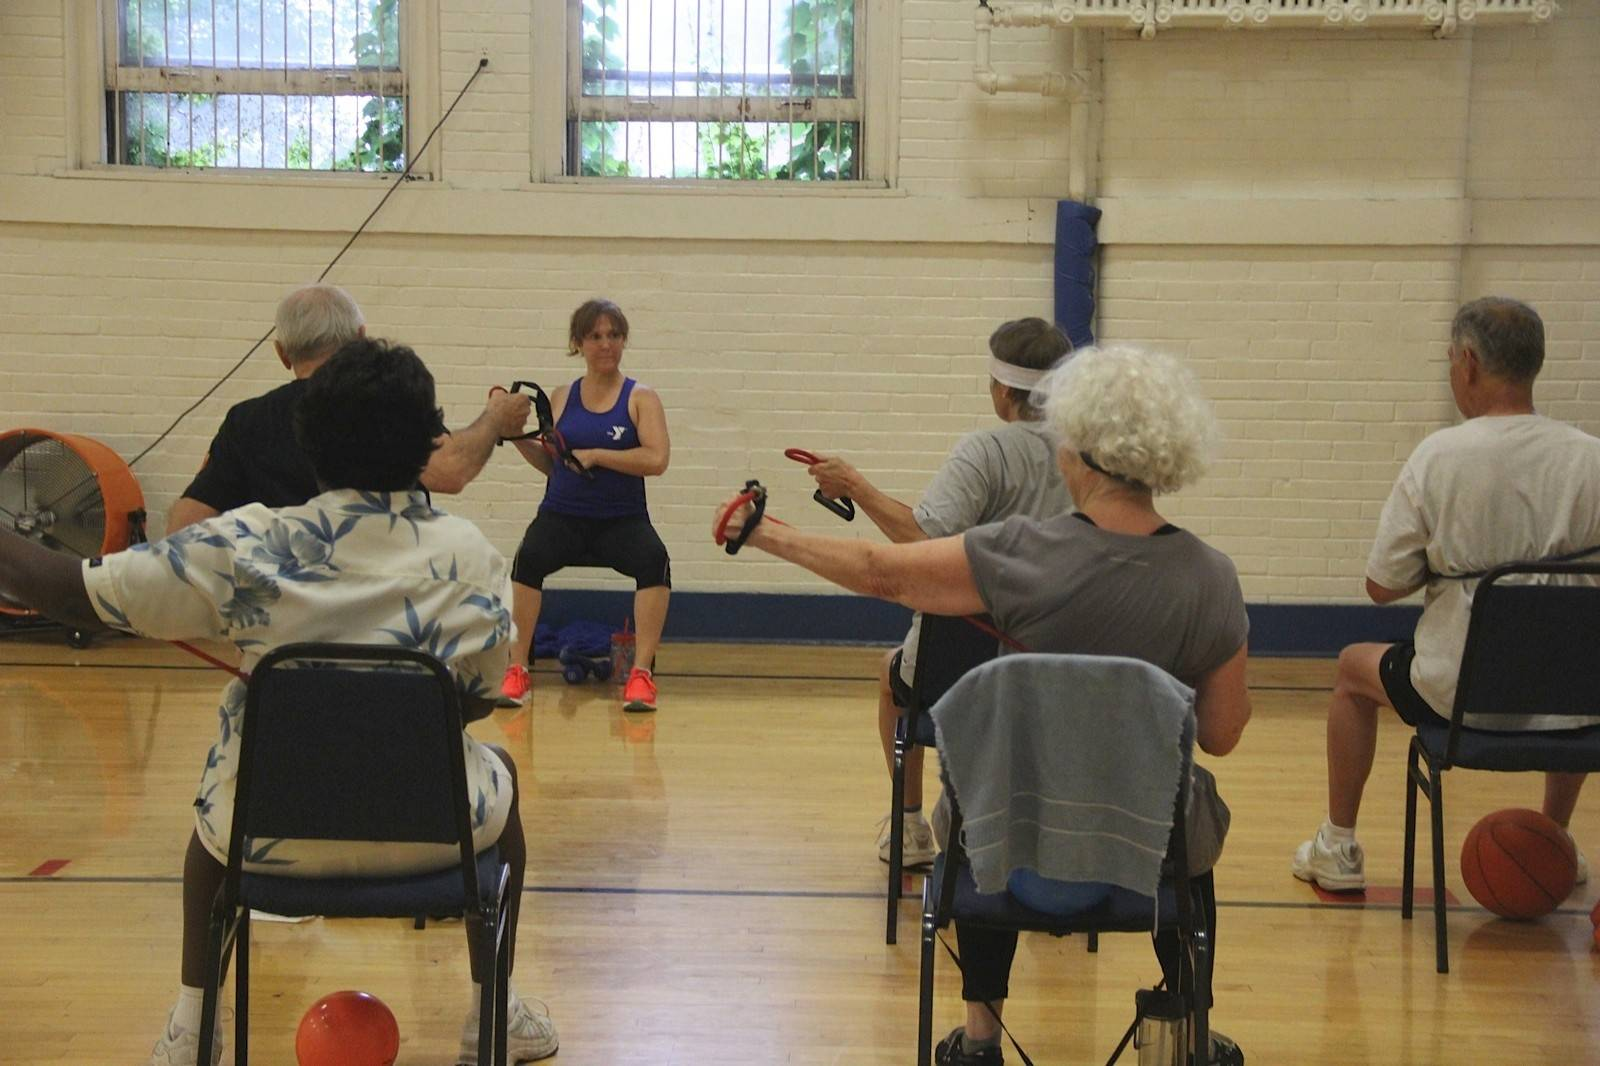 Kim Monti teaches a Silver Sneakers class at the Kroehler Family YMCA in Naperville.